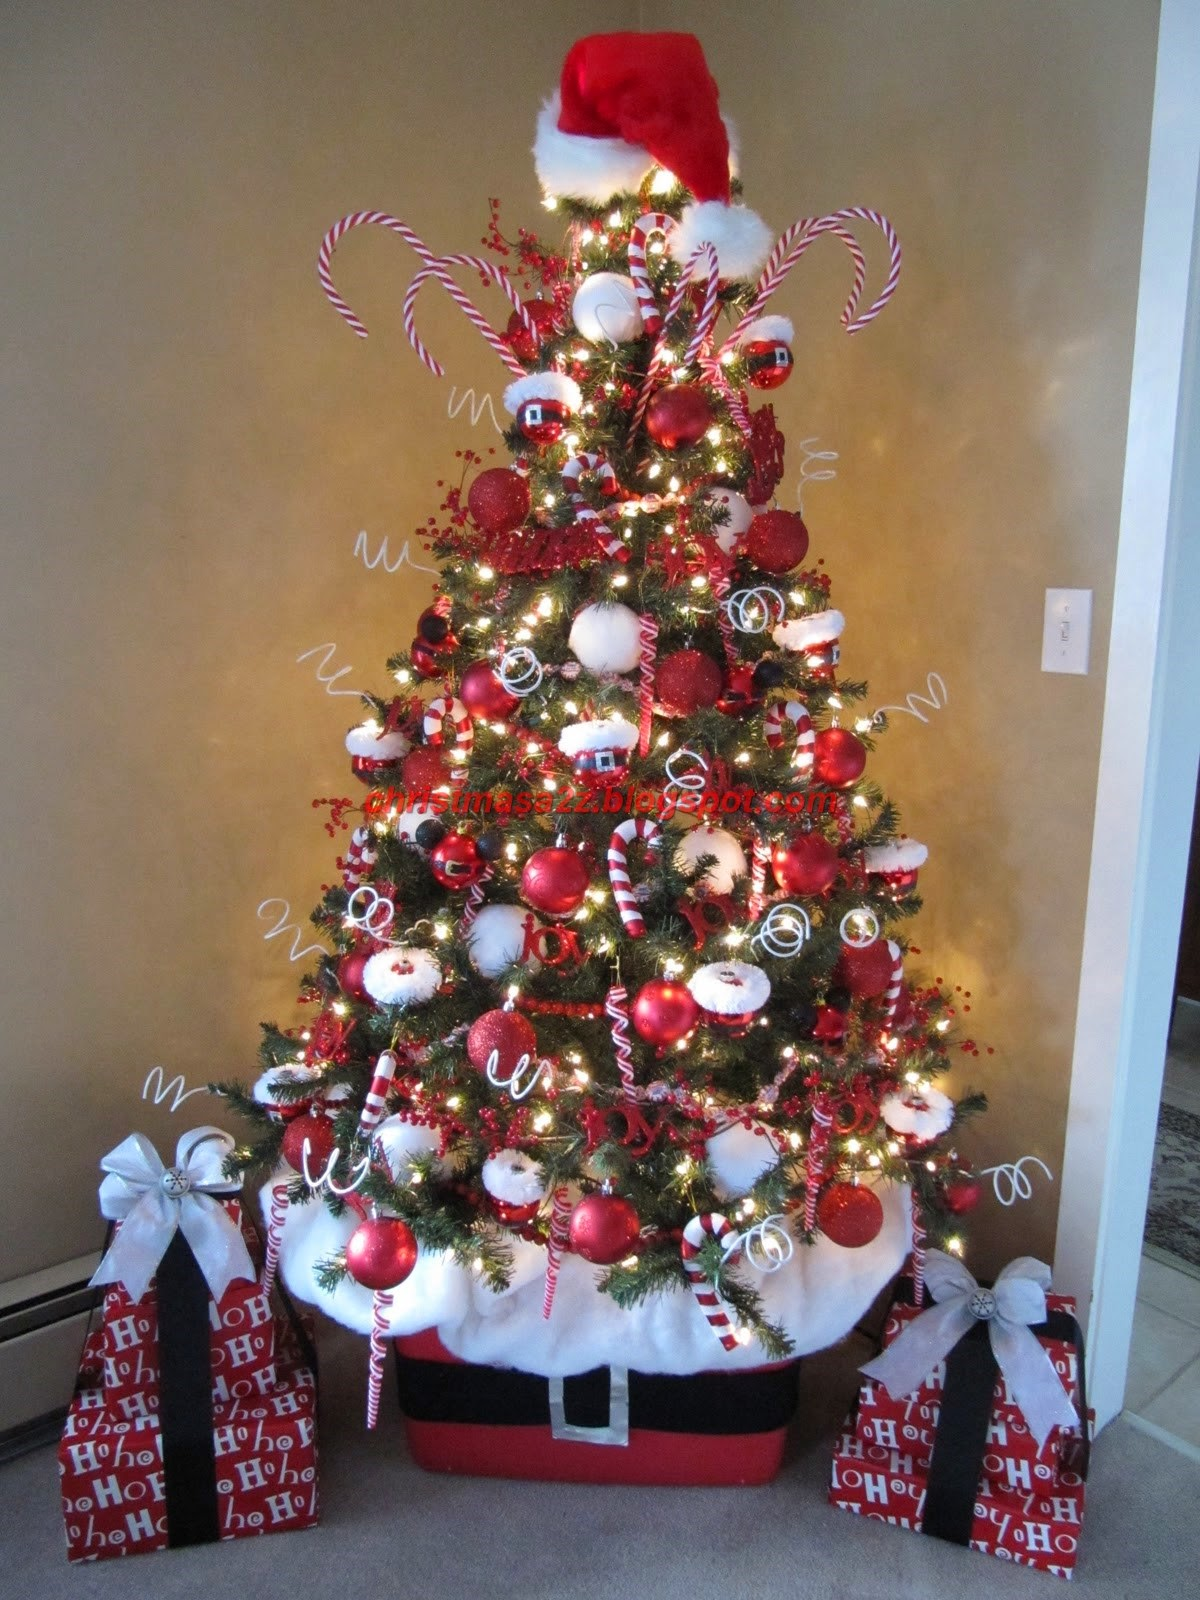 best artificial decorated christmas tree in 2014 - Best Decorated Christmas Trees 2014